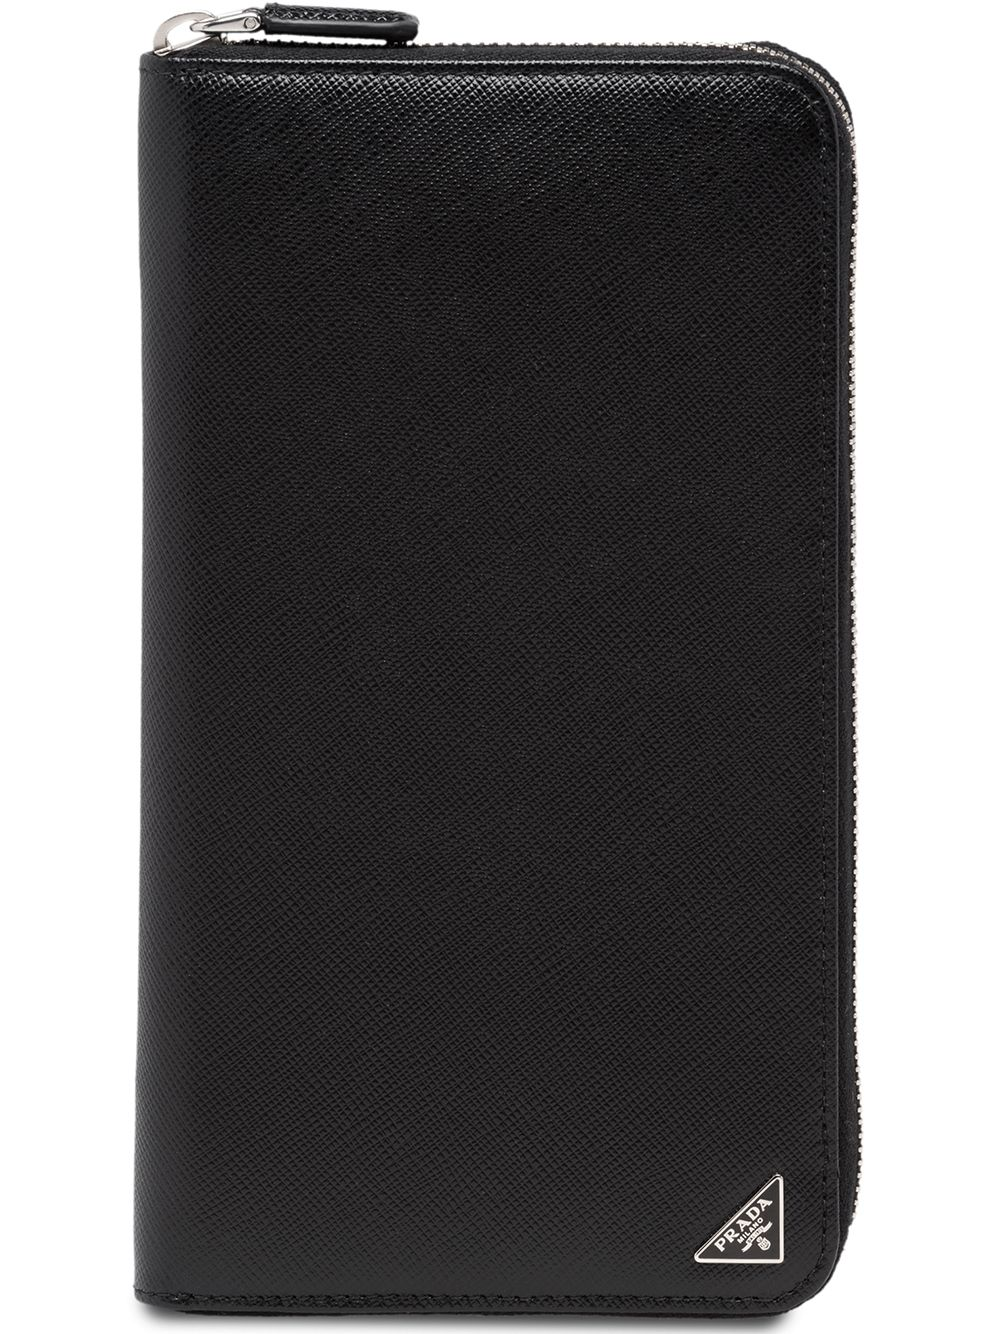 Prada Document Holder - Black von Prada